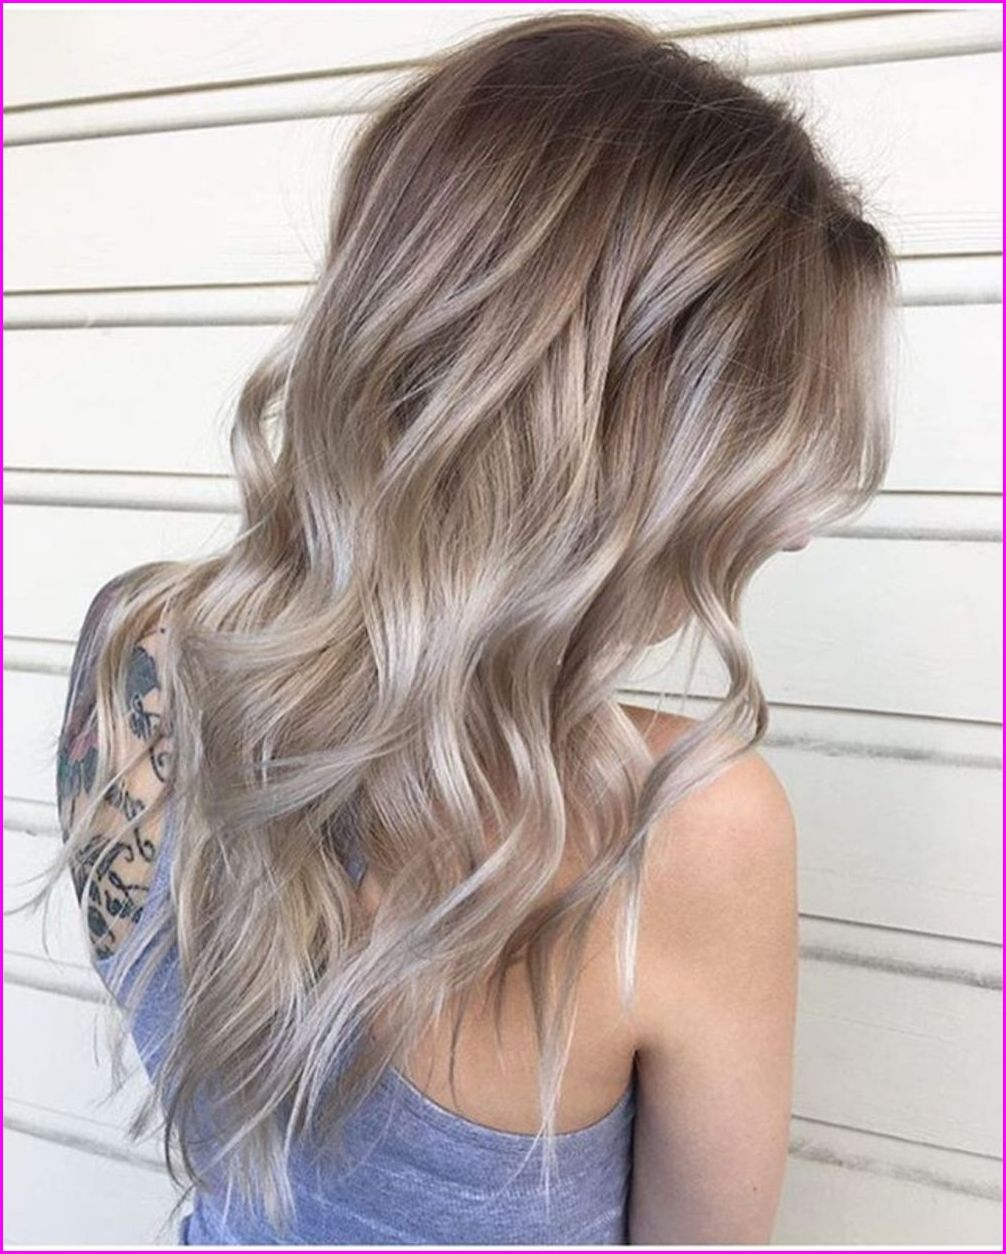 Dark Blonde Hair Color Ideas We All Have Our Favorite Blonde Today We Are Going To Examine Dark Ash Blonde Hair Colour Dark Blonde Hair Color Ash Blonde Hair